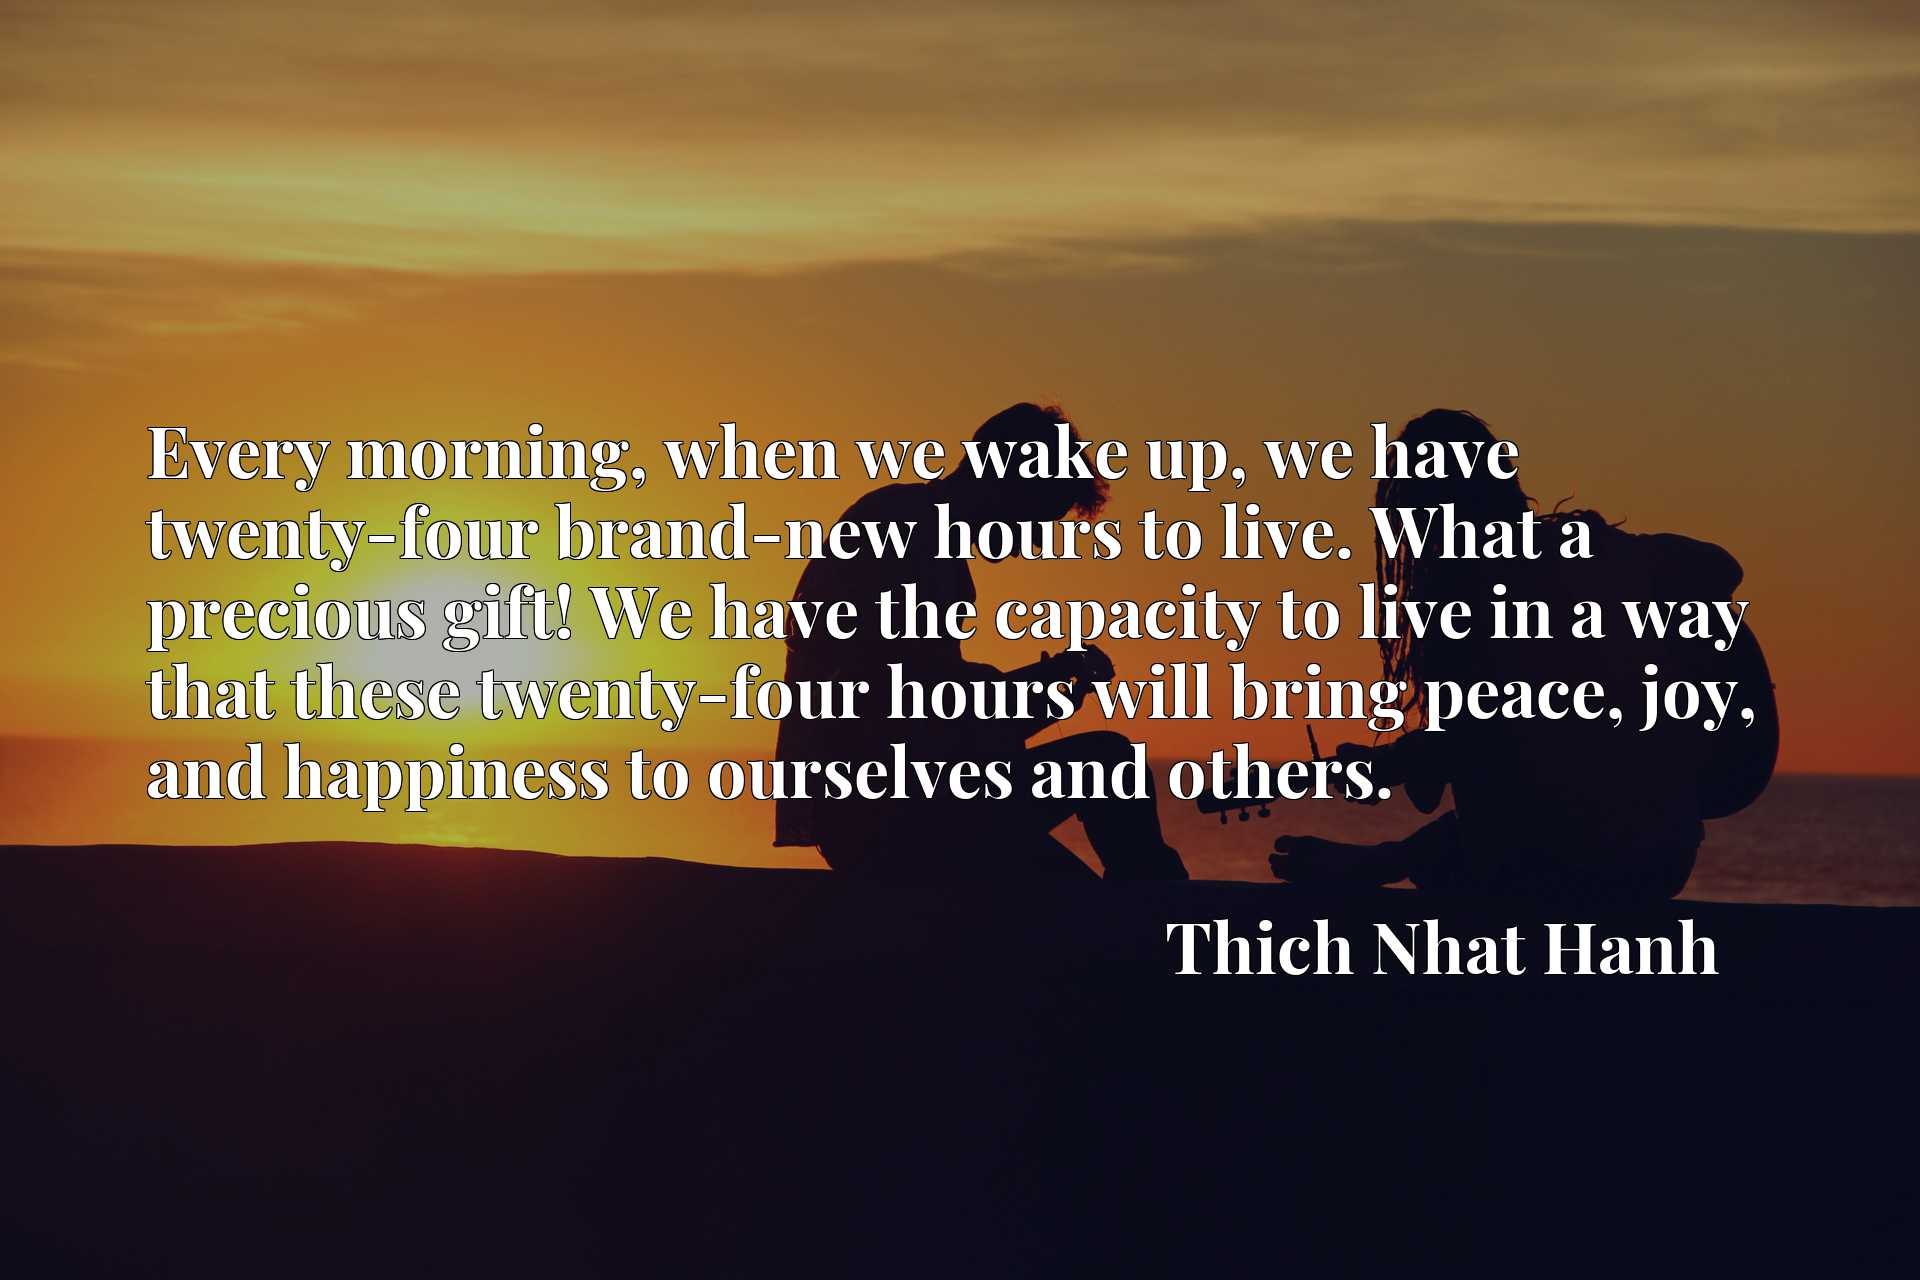 Every morning, when we wake up, we have twenty-four brand-new hours to live. What a precious gift! We have the capacity to live in a way that these twenty-four hours will bring peace, joy, and happiness to ourselves and others.